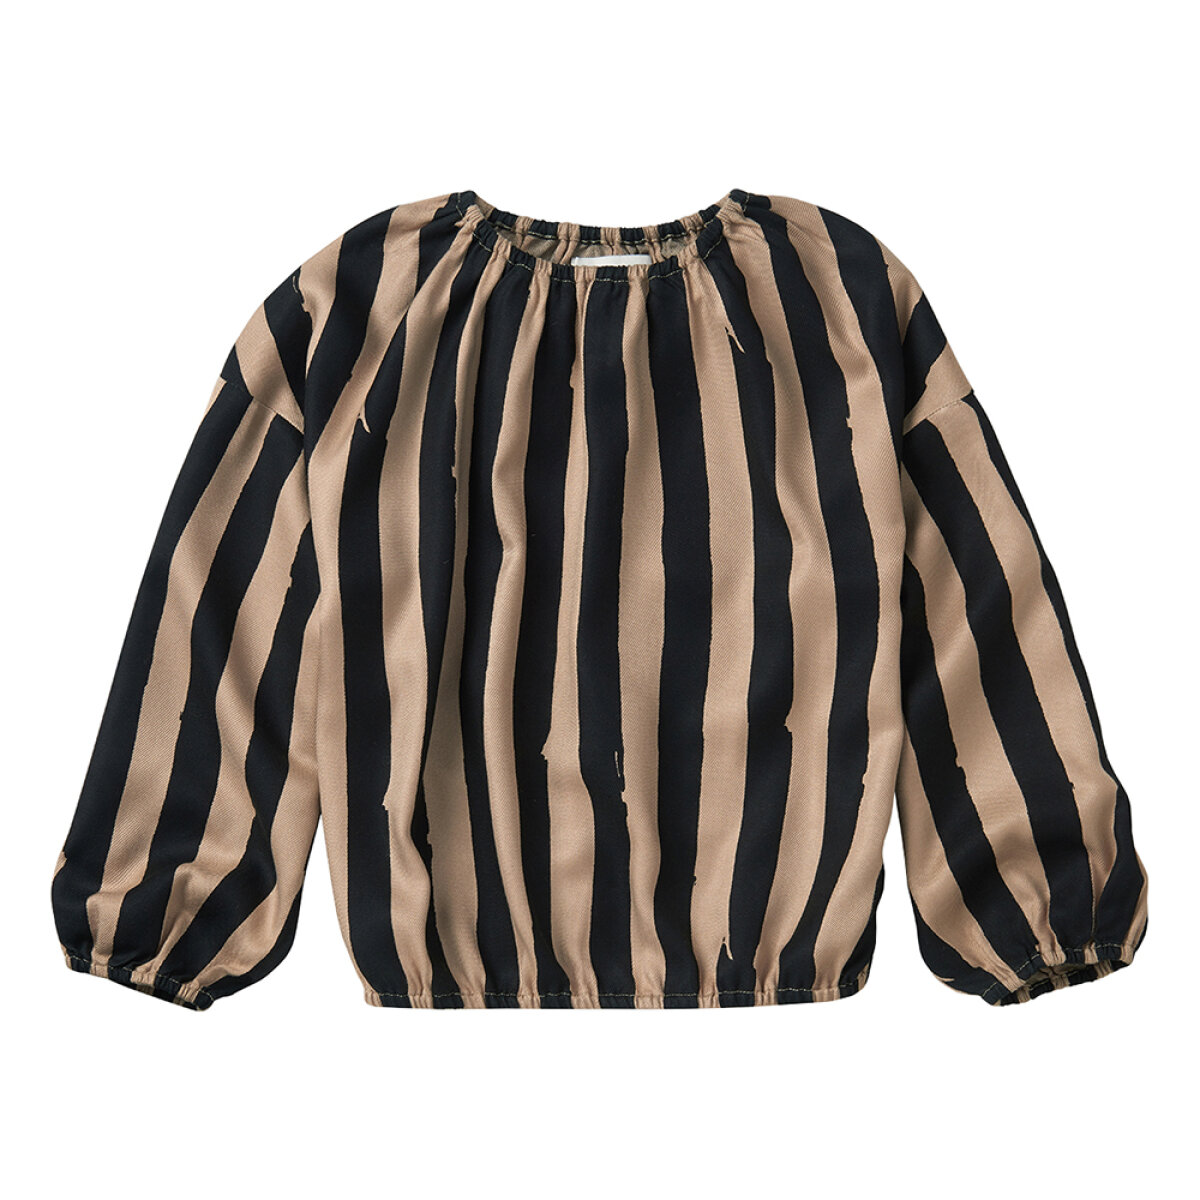 Sproet & Sprout meisjes blouse PS21-608